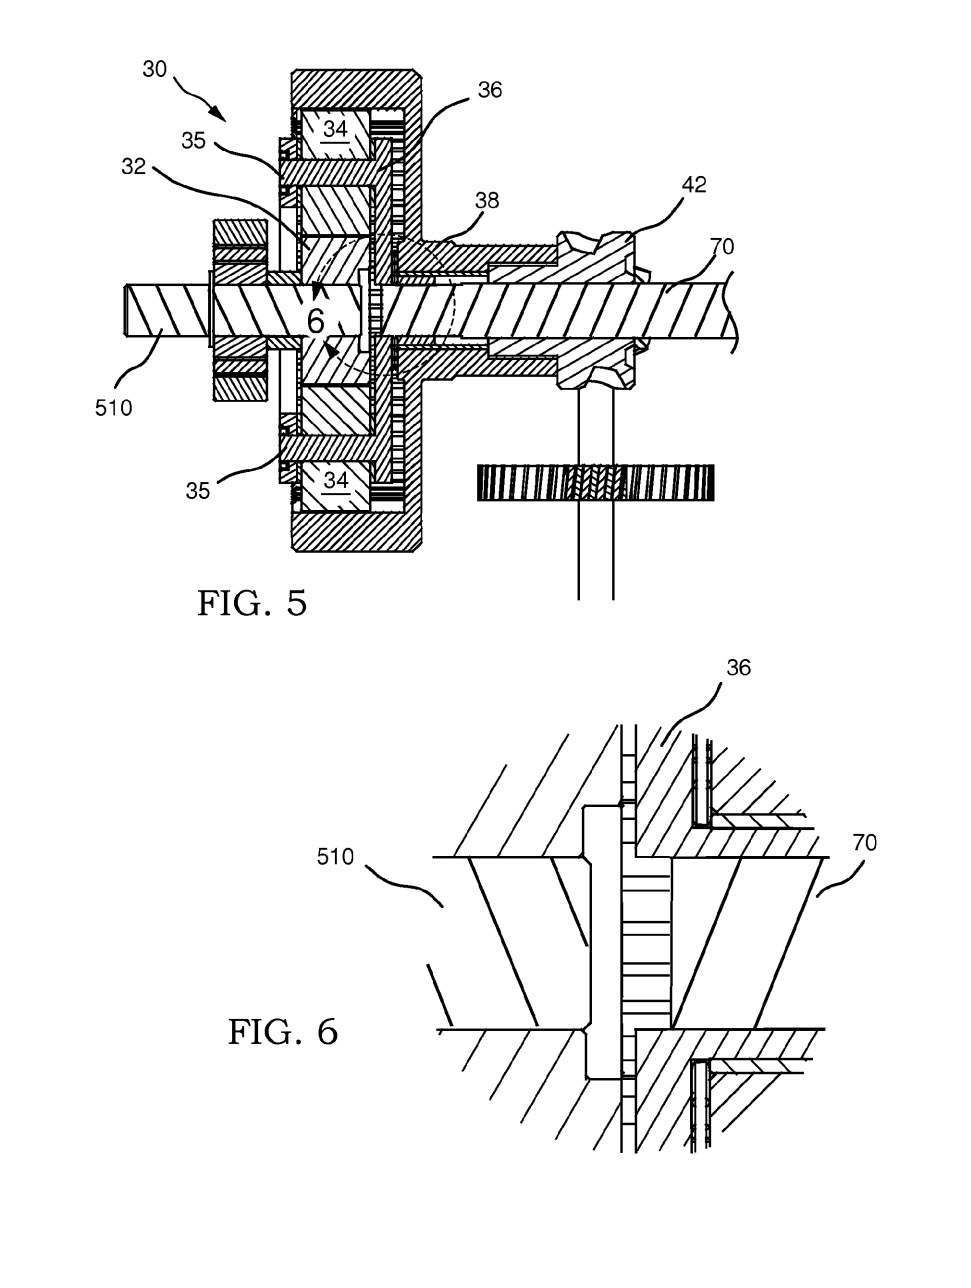 patent drawing gears sectioned